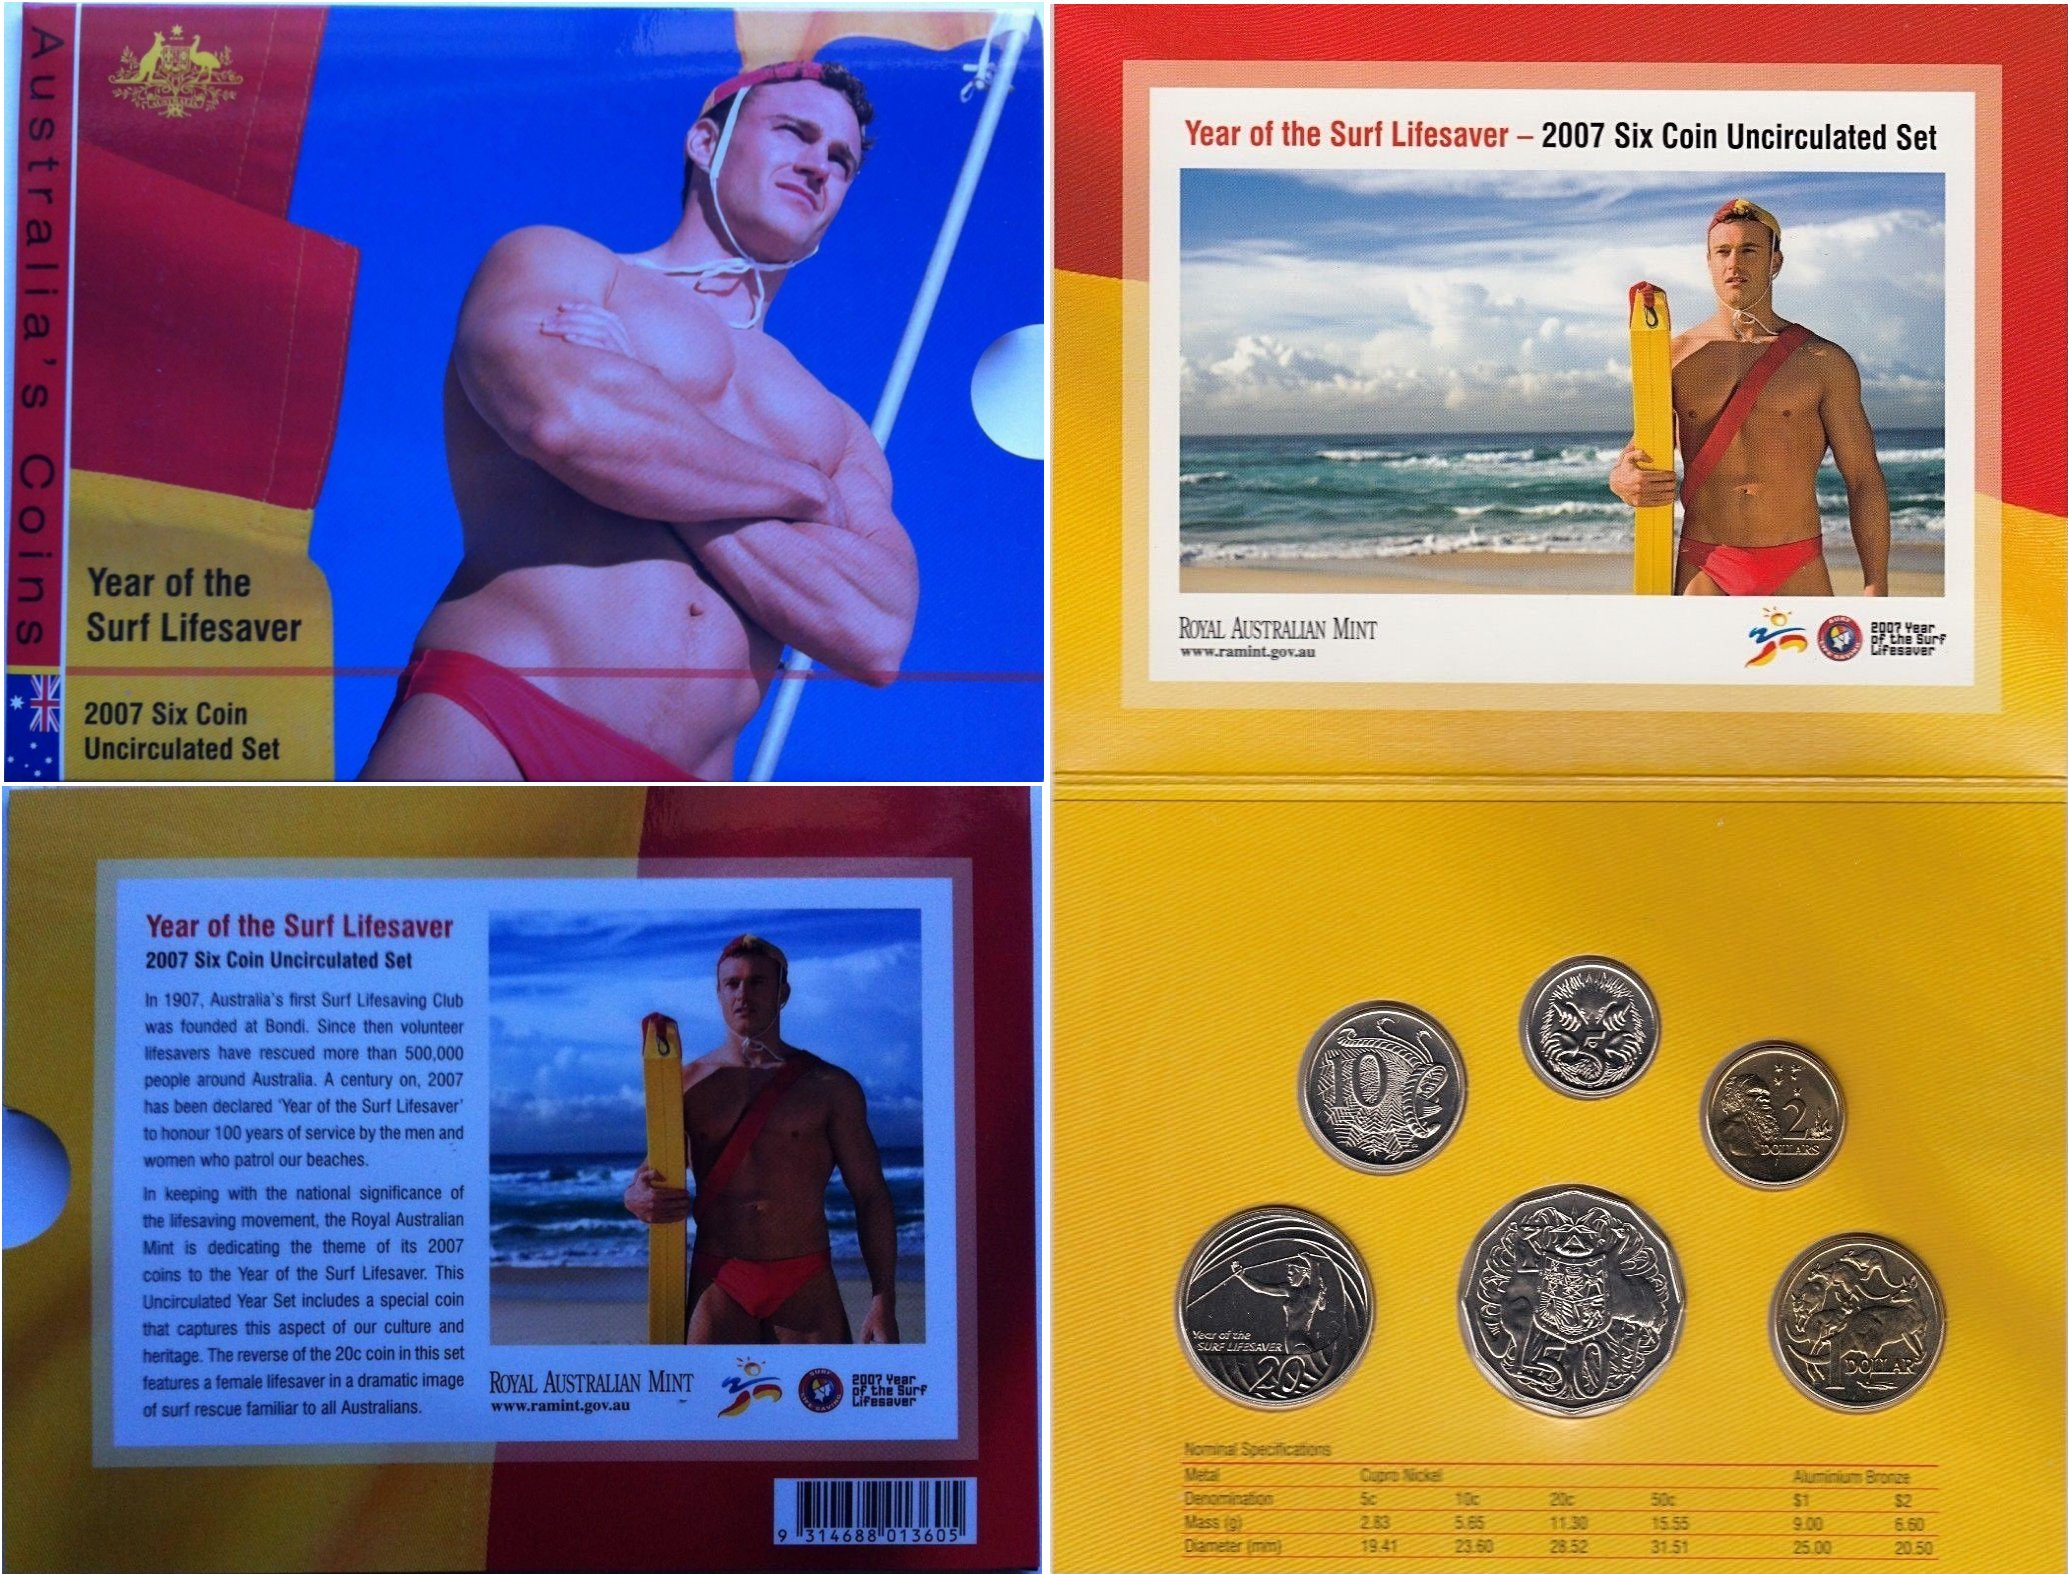 2007 ROYAL AUST MINT YEAR OF THE SURF LIFESAVER SIX COIN PROOF SET